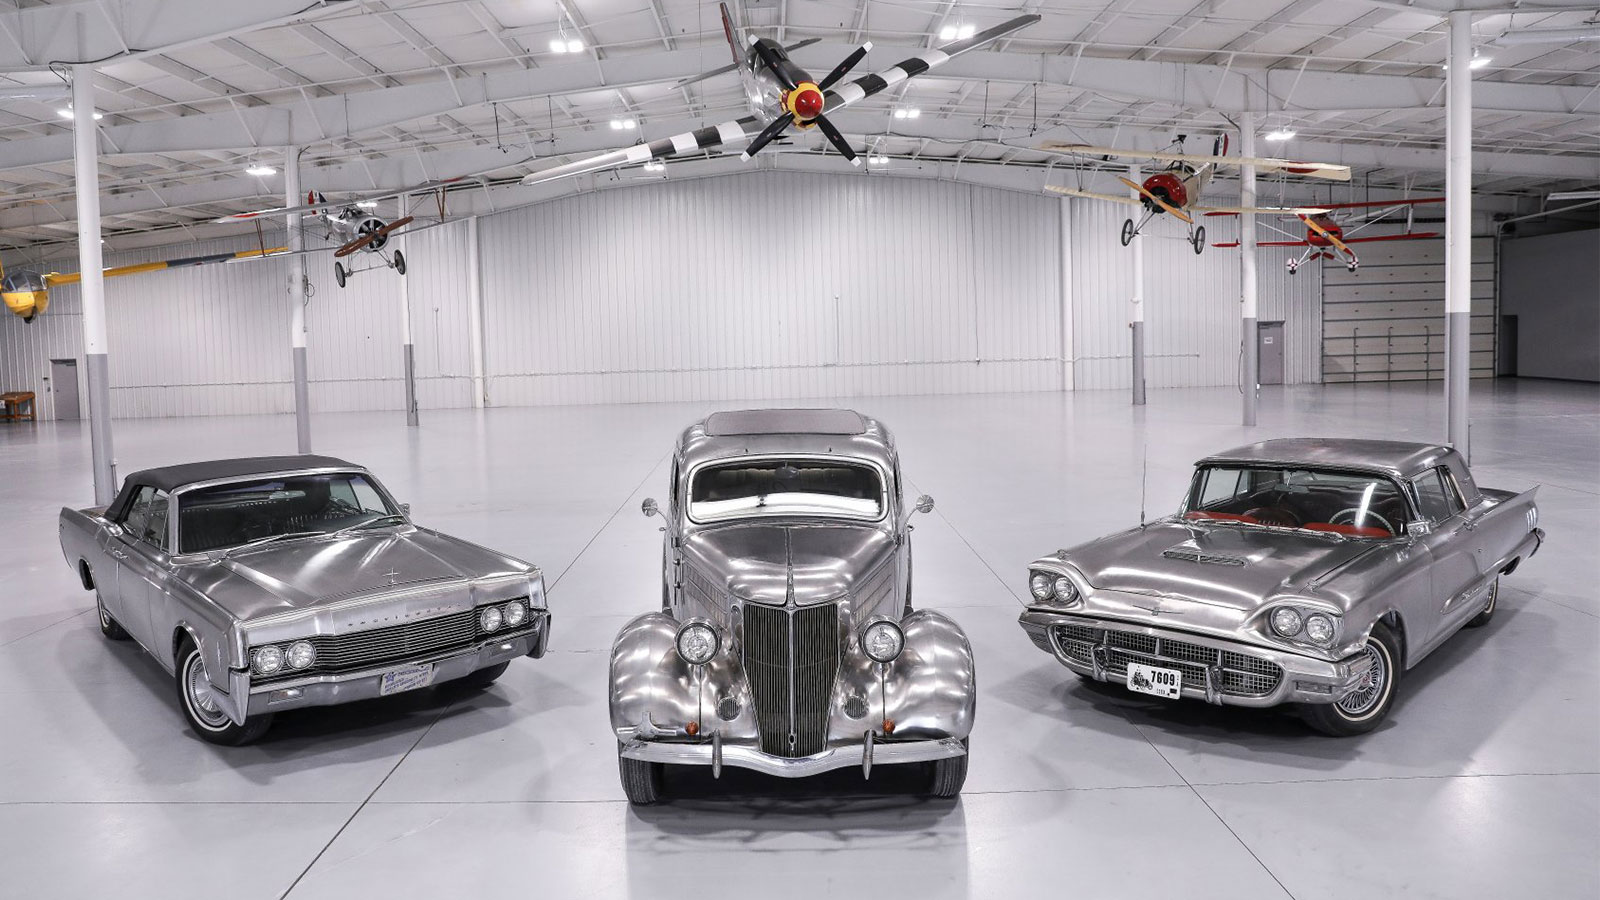 Vintage Stainless Steel Fords